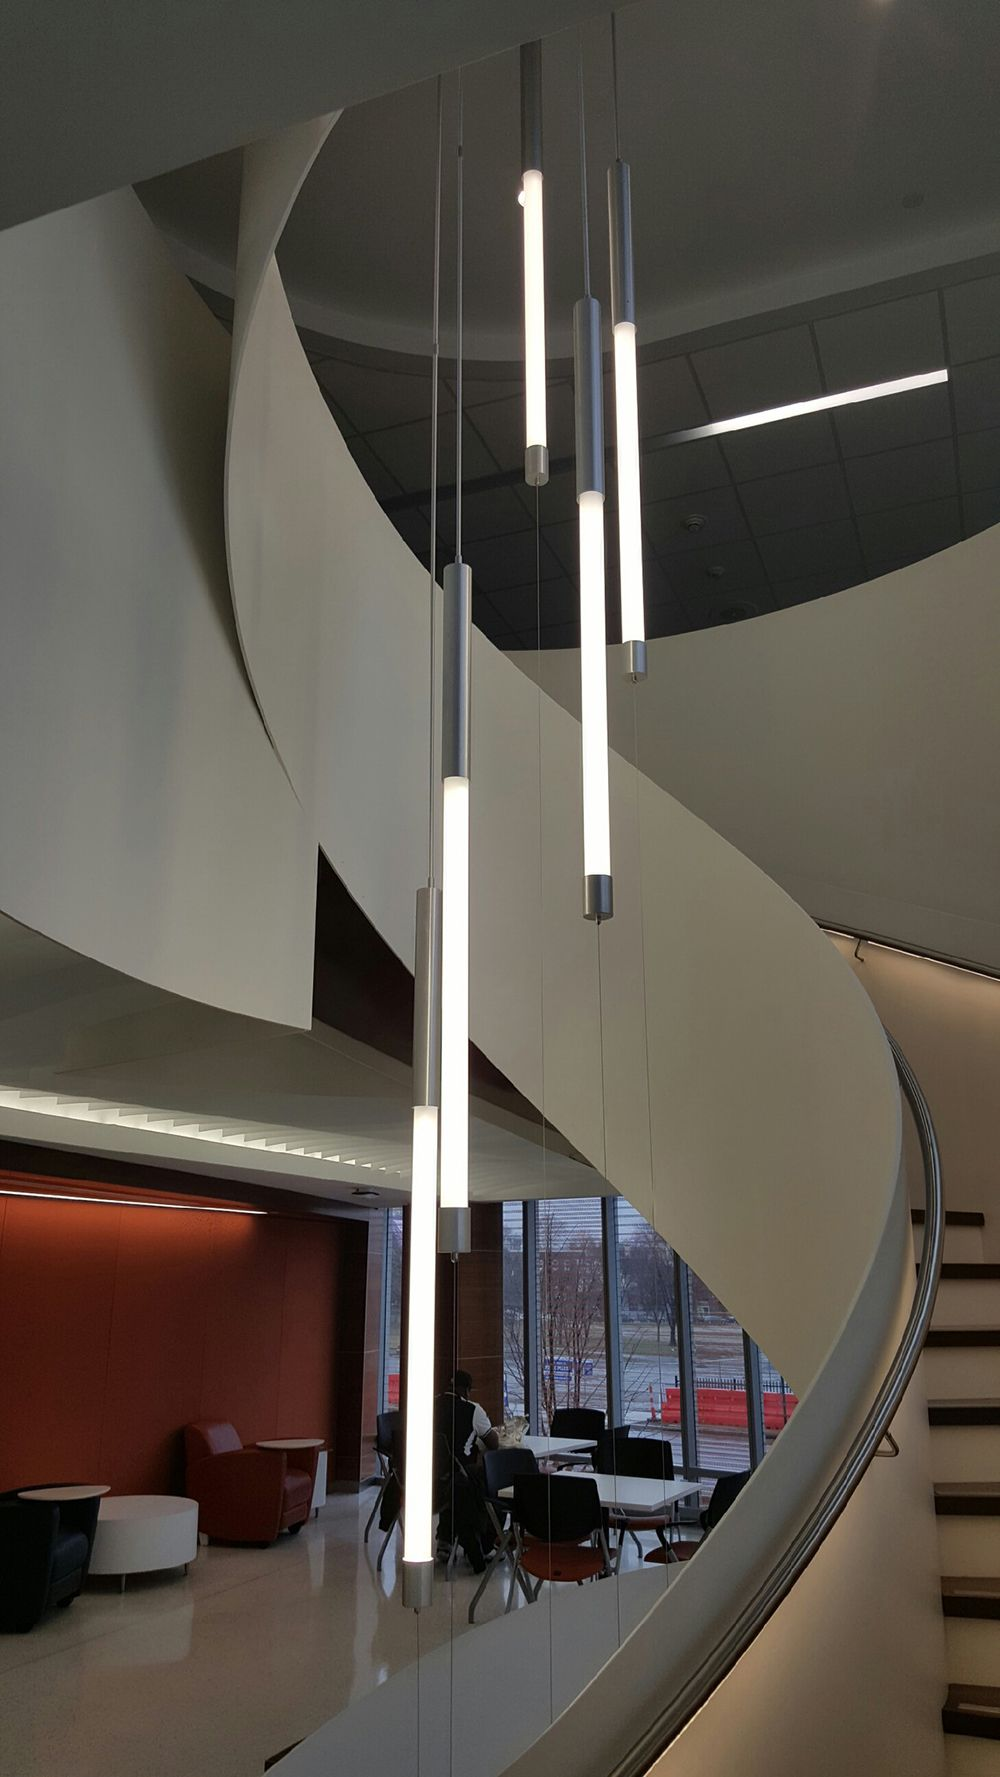 Delicate-looking Pavo 2.0 pendants by SPI Lighting are arranged in a configuration to decorate this stairway.